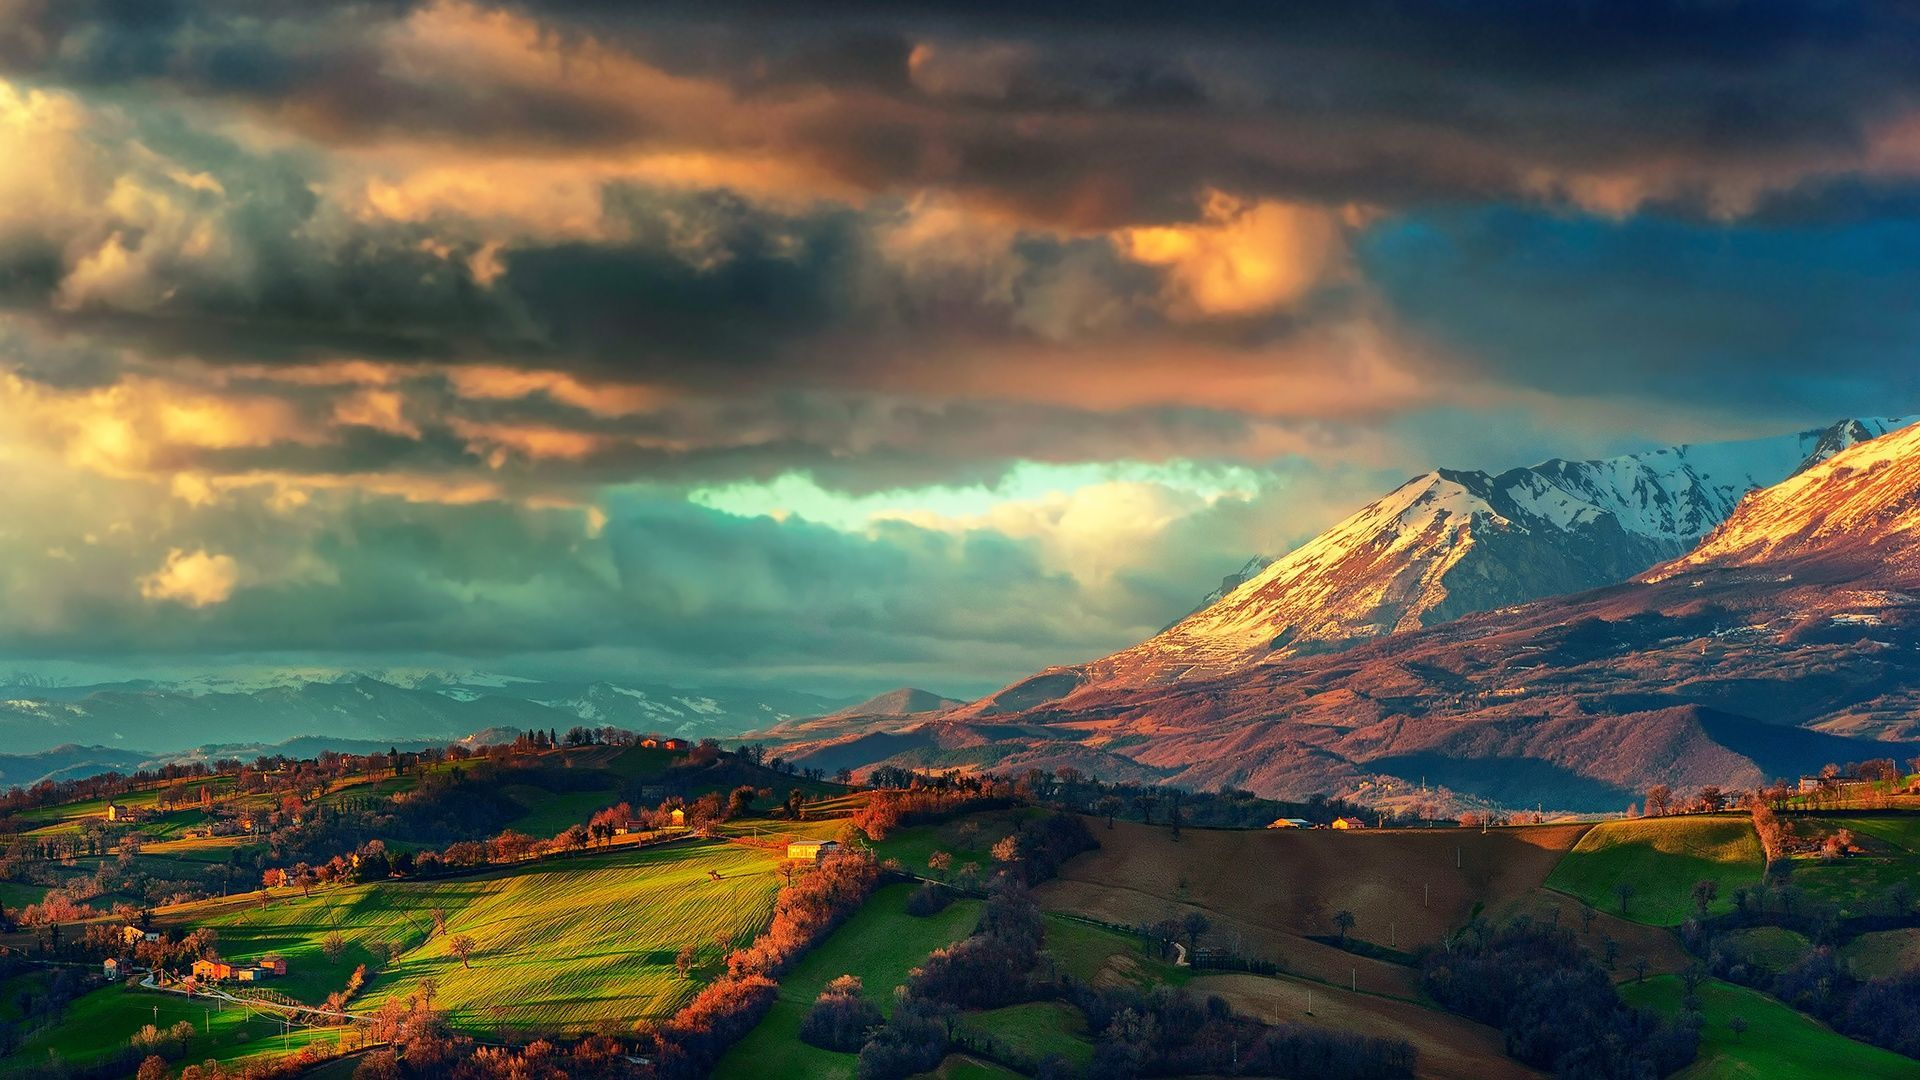 Cool Landscape Wallpapers Posted By Samantha Johnson